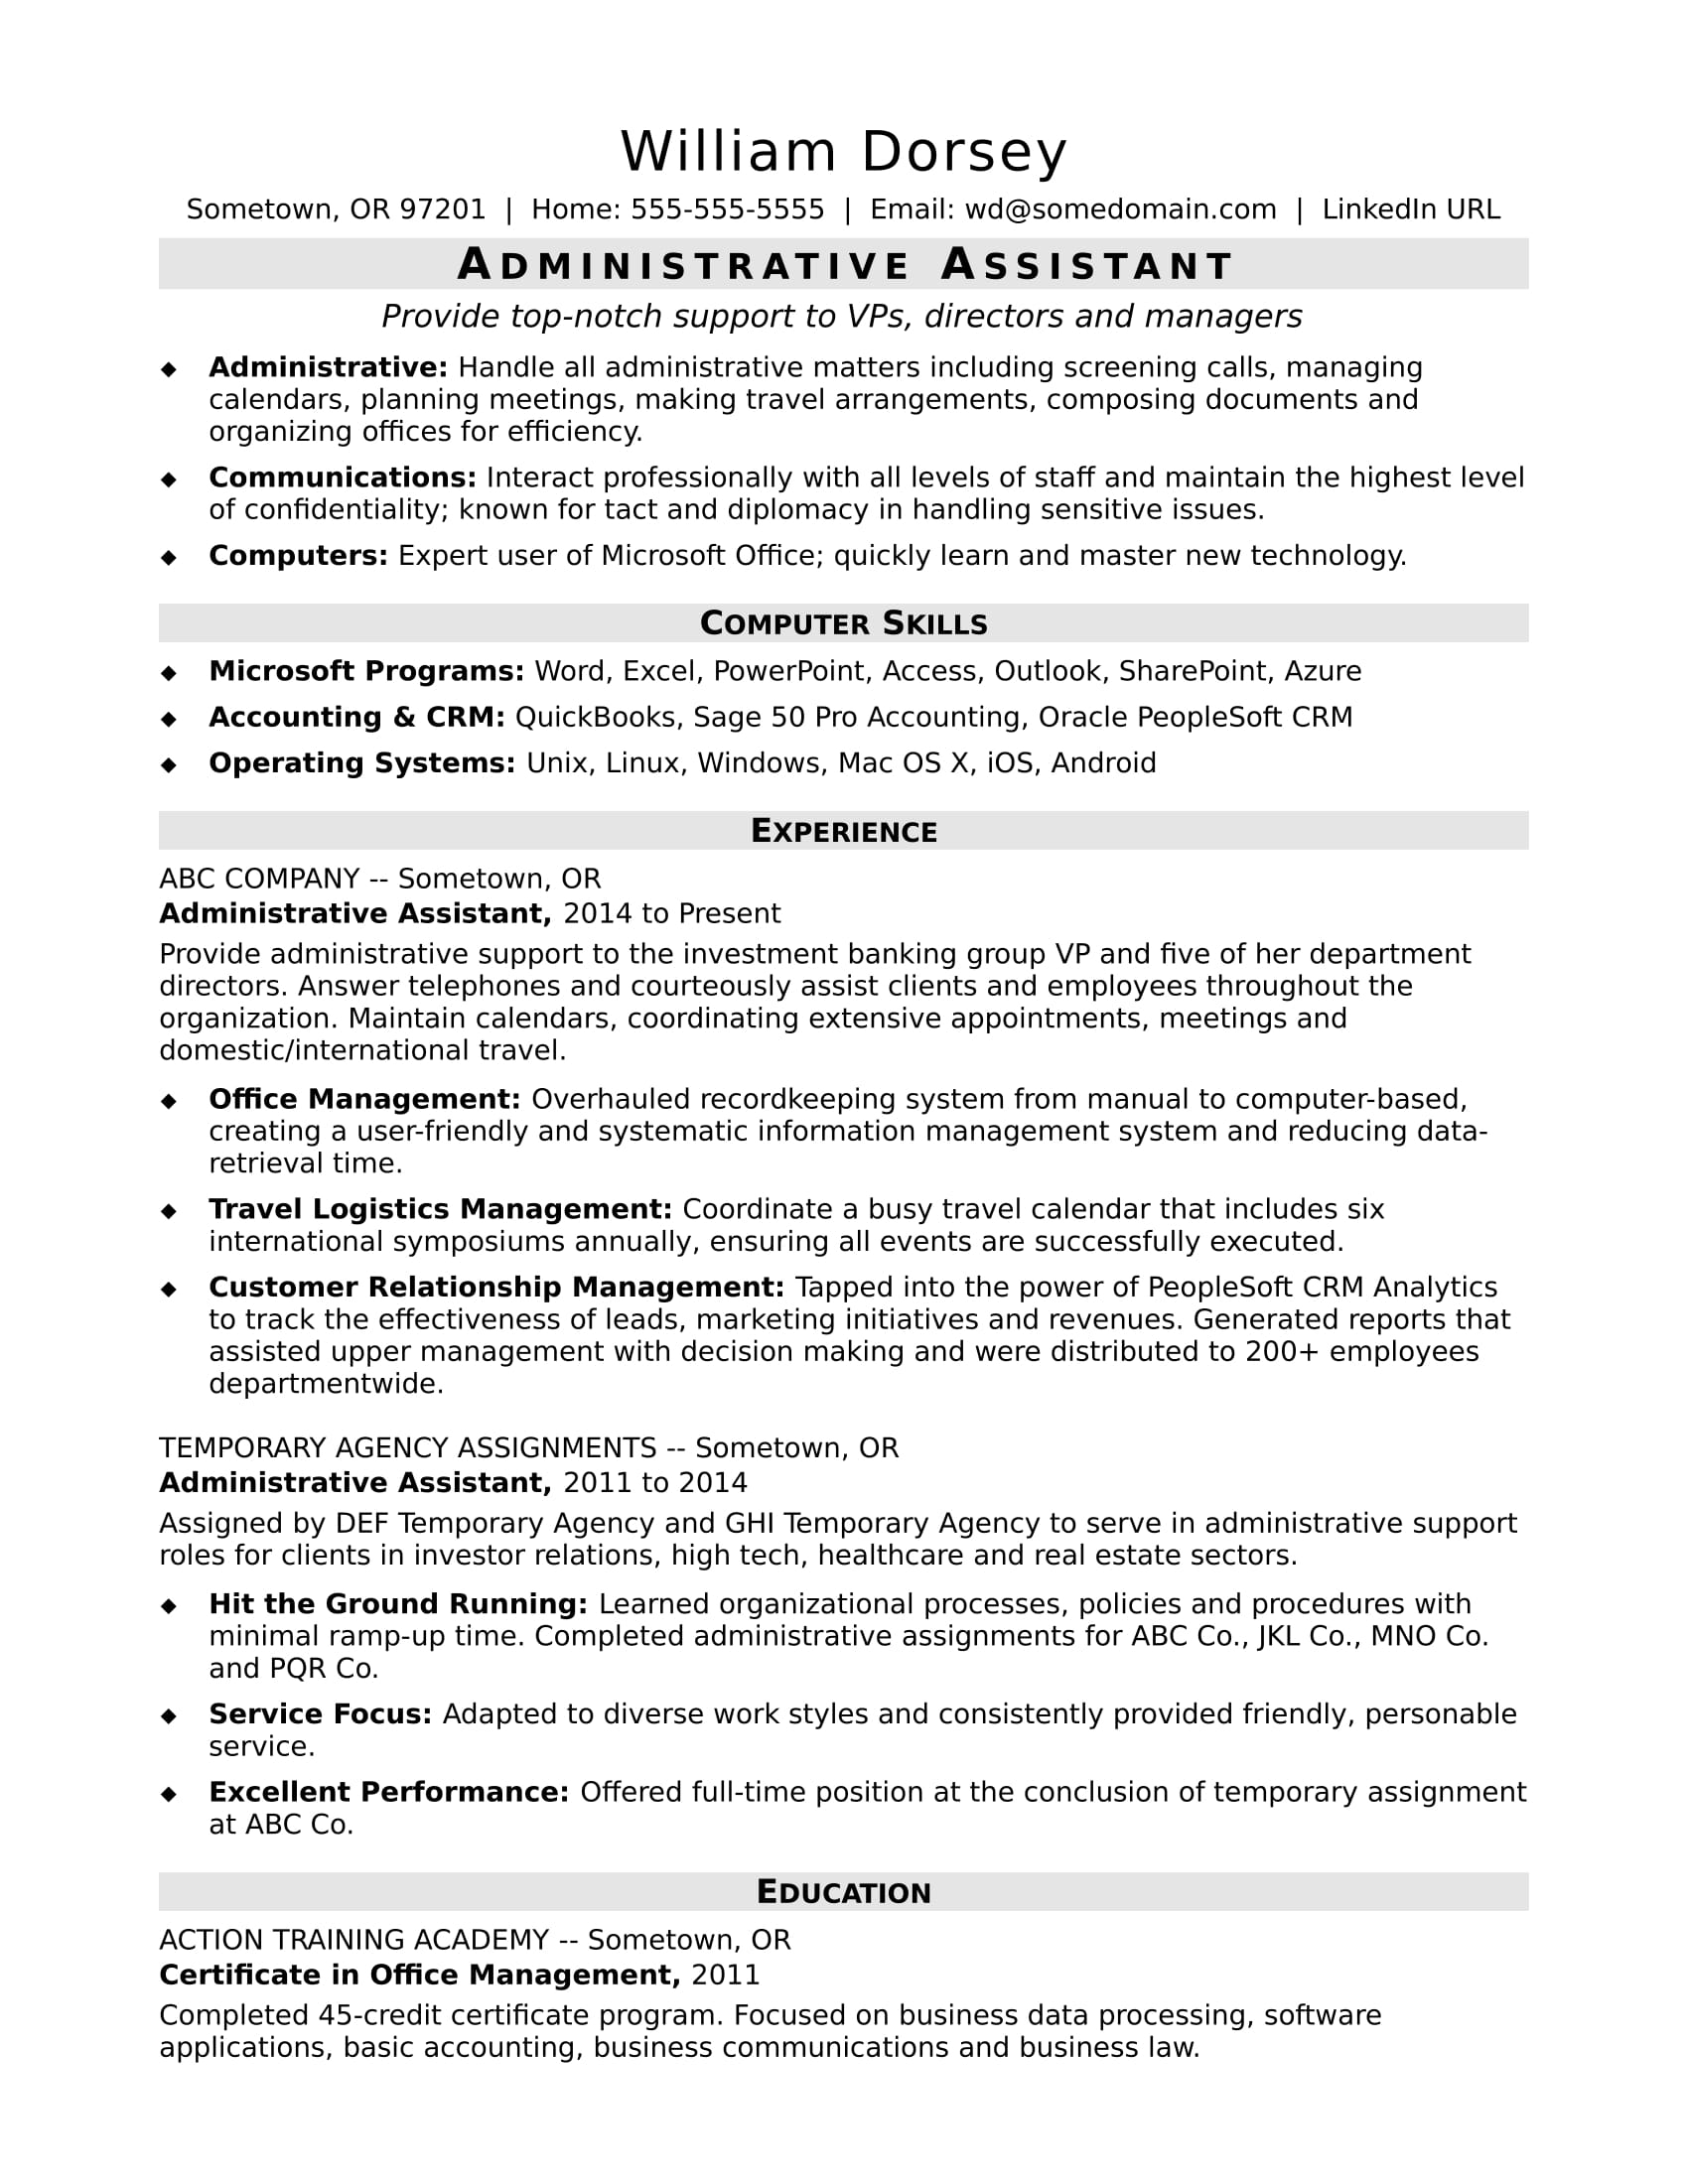 midlevel administrative assistant resume sample monster best for position education or Resume Best Resume For Administrative Position